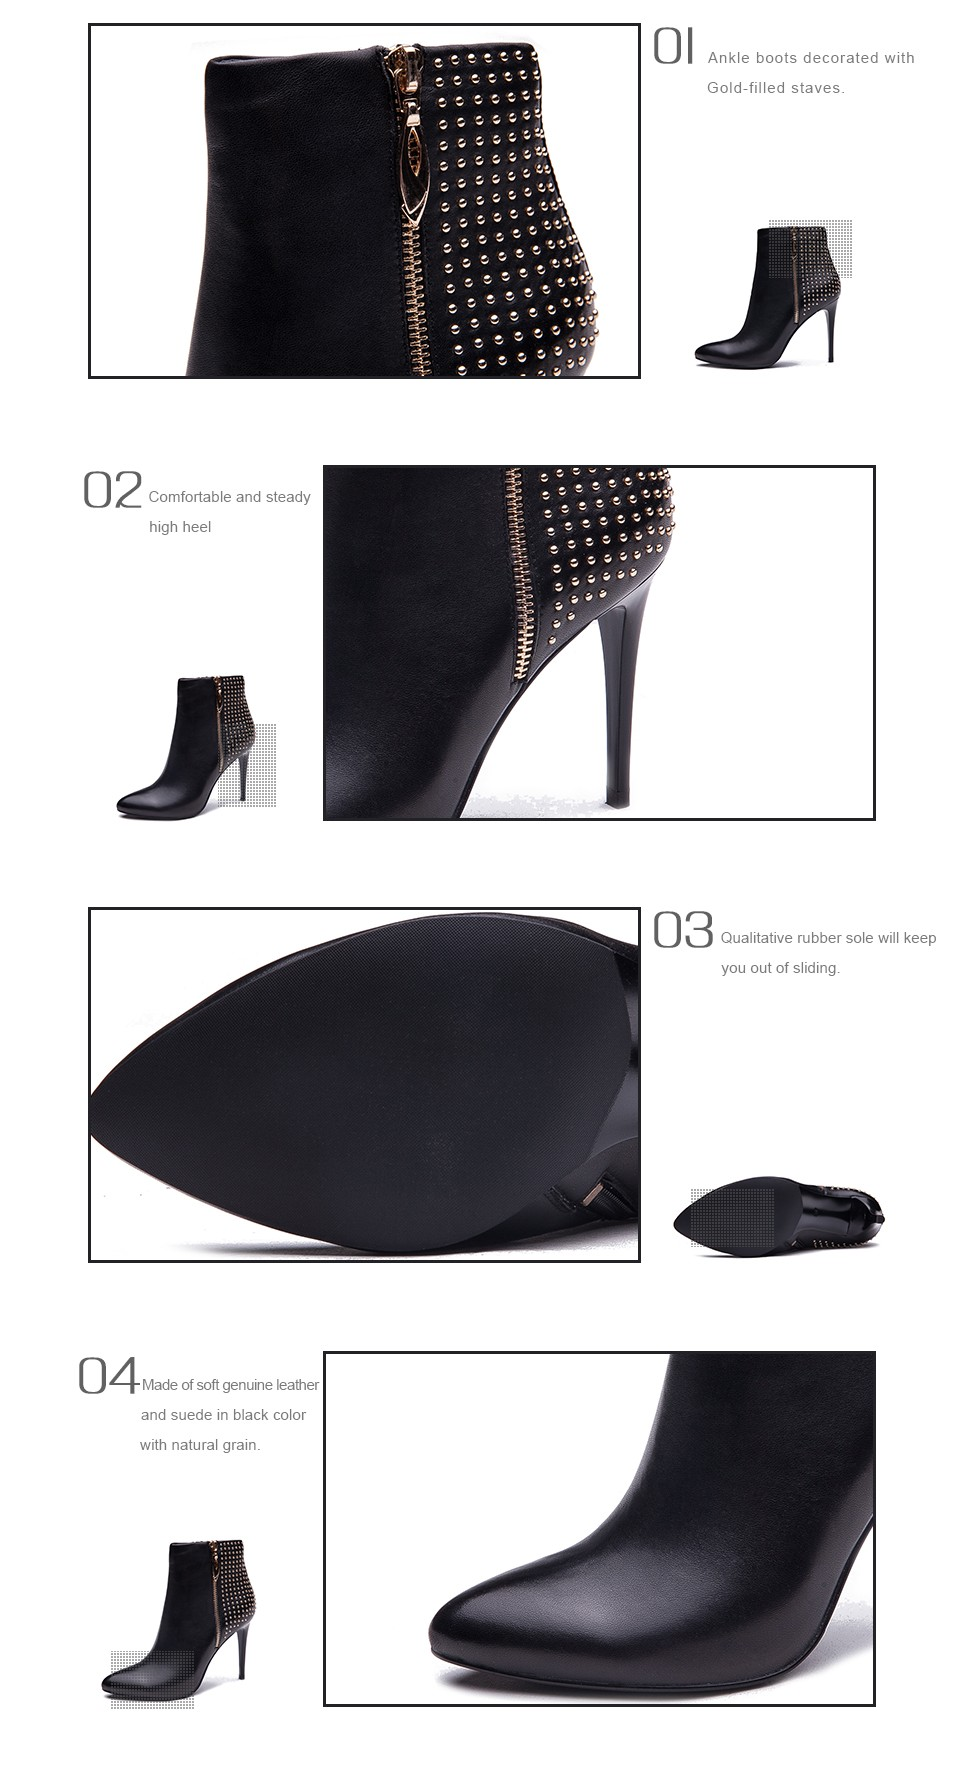 Details about  /Ladies High Stiletto Chelsea Boots Side-zip Stitching Colored Pointed Toe Hd214